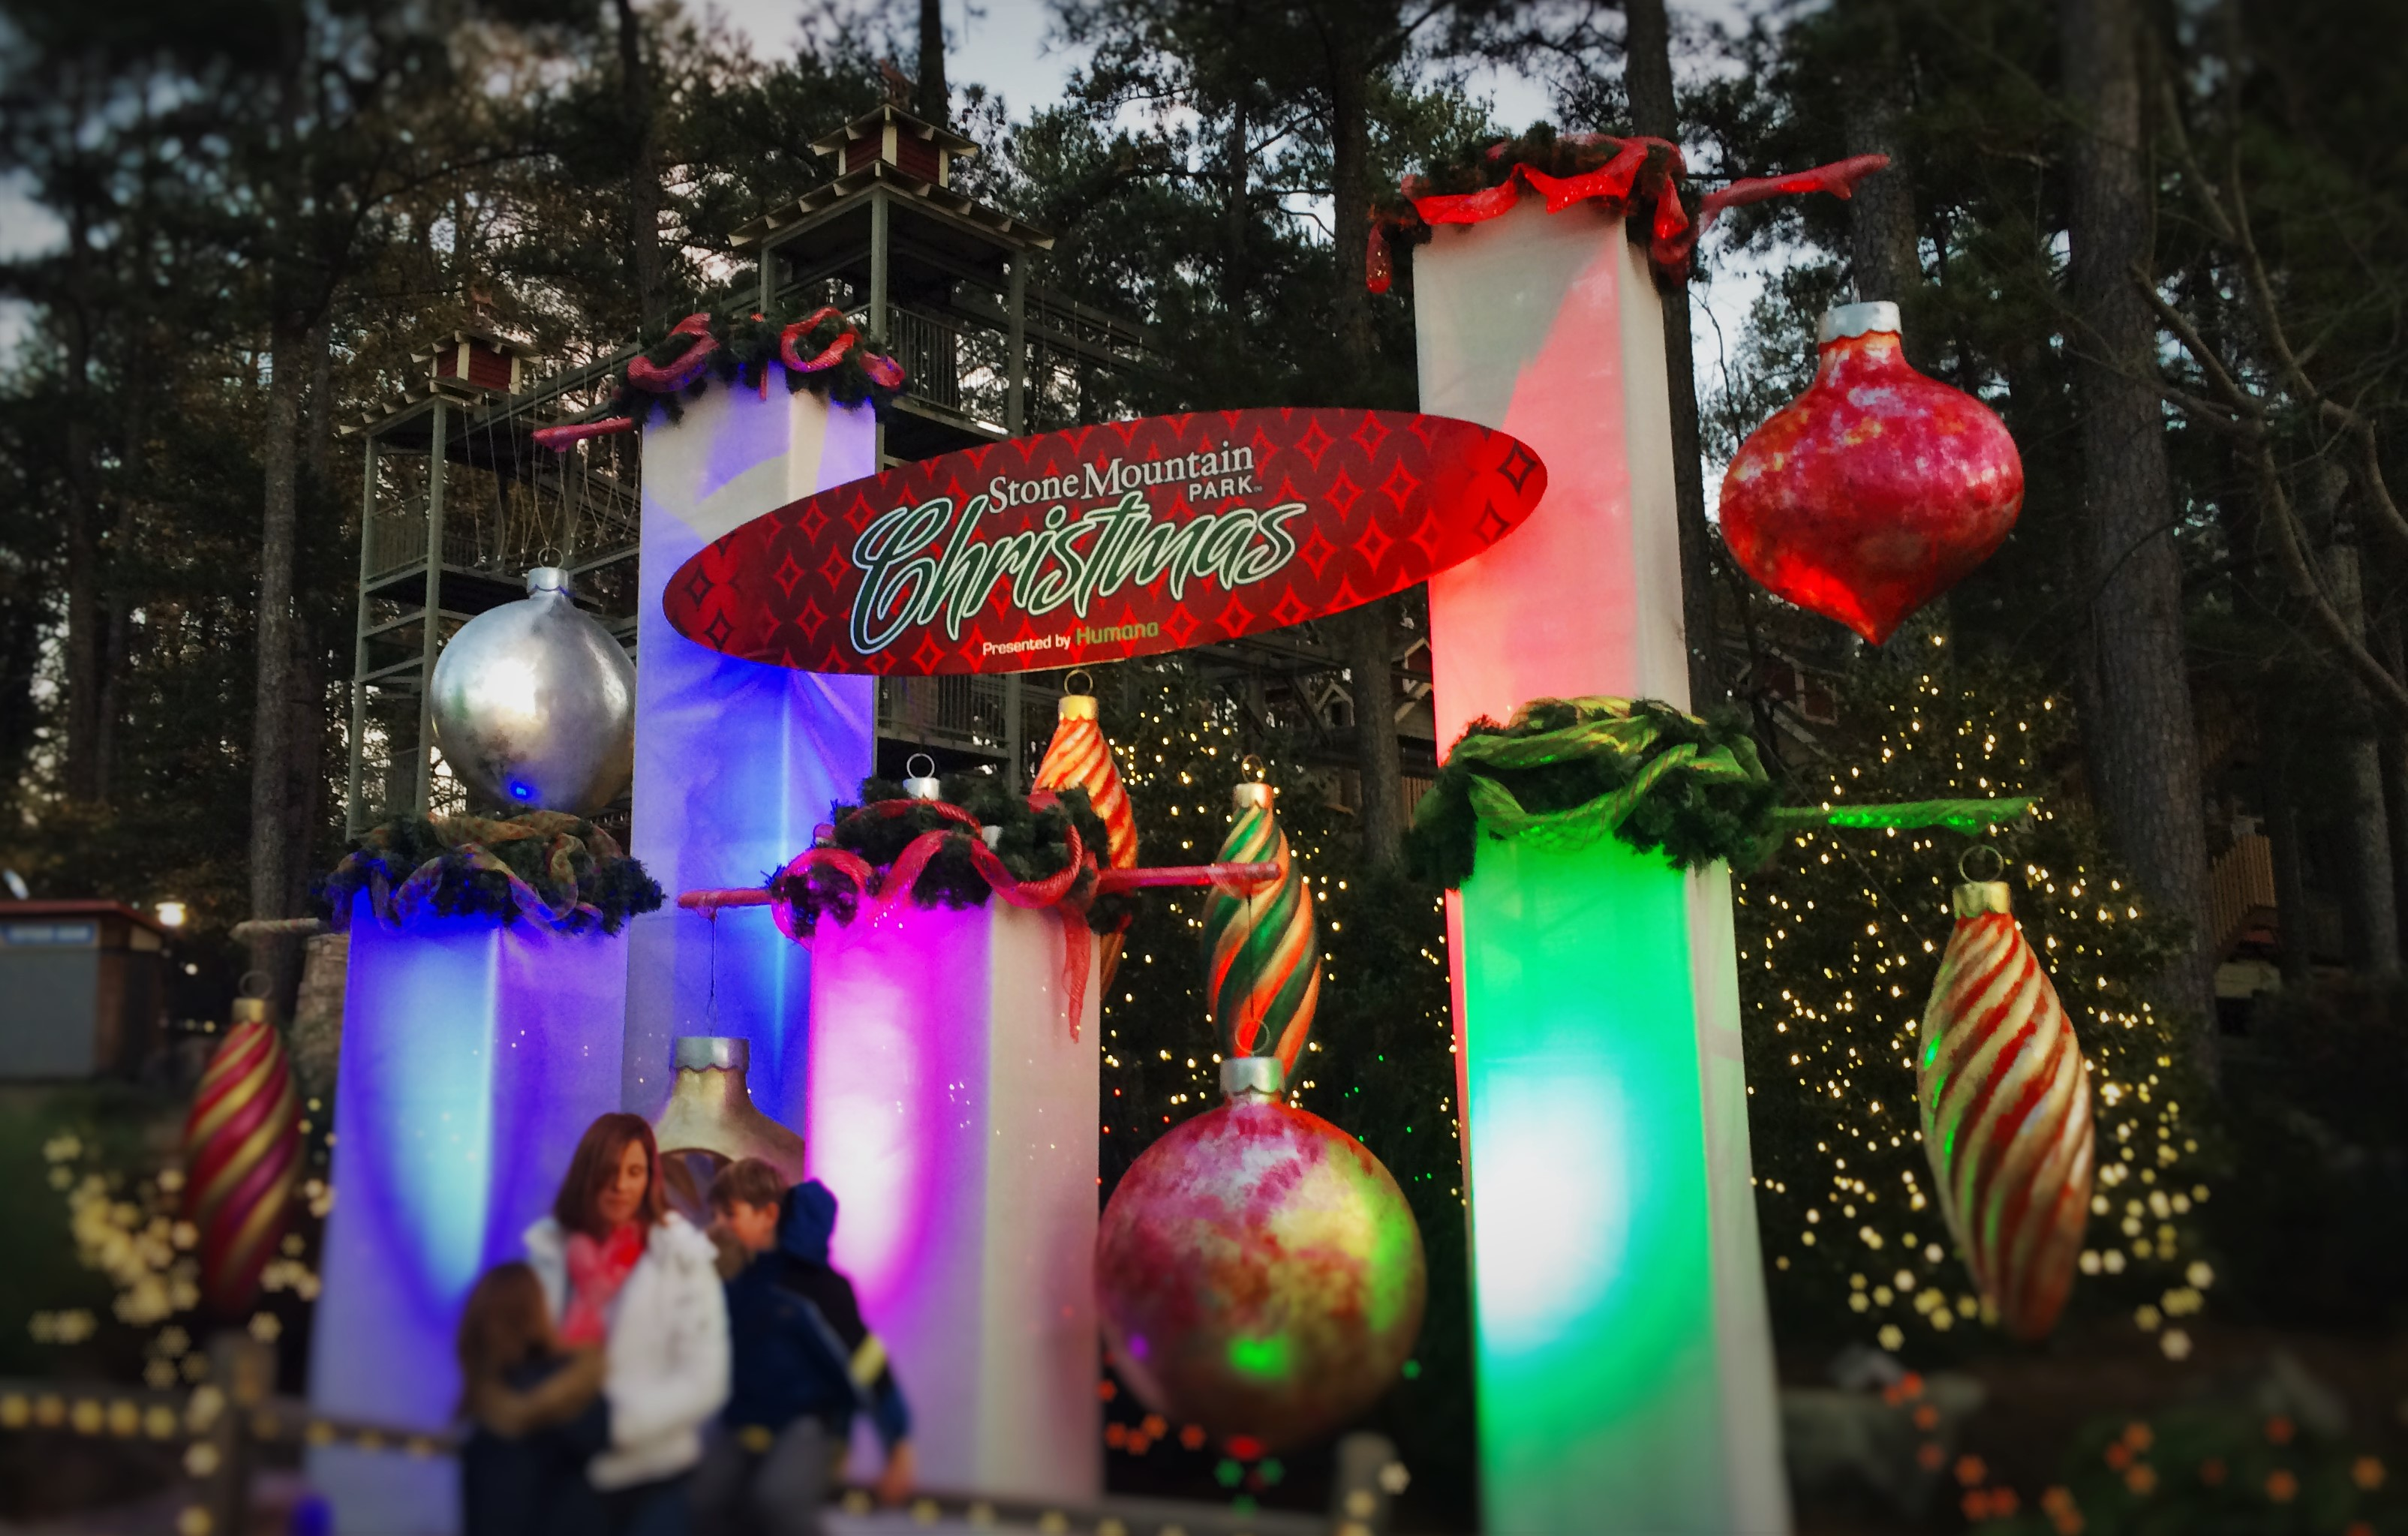 Stone Mountain Christmas.Um What S Up With Stone Mountain 2 Travel Dads